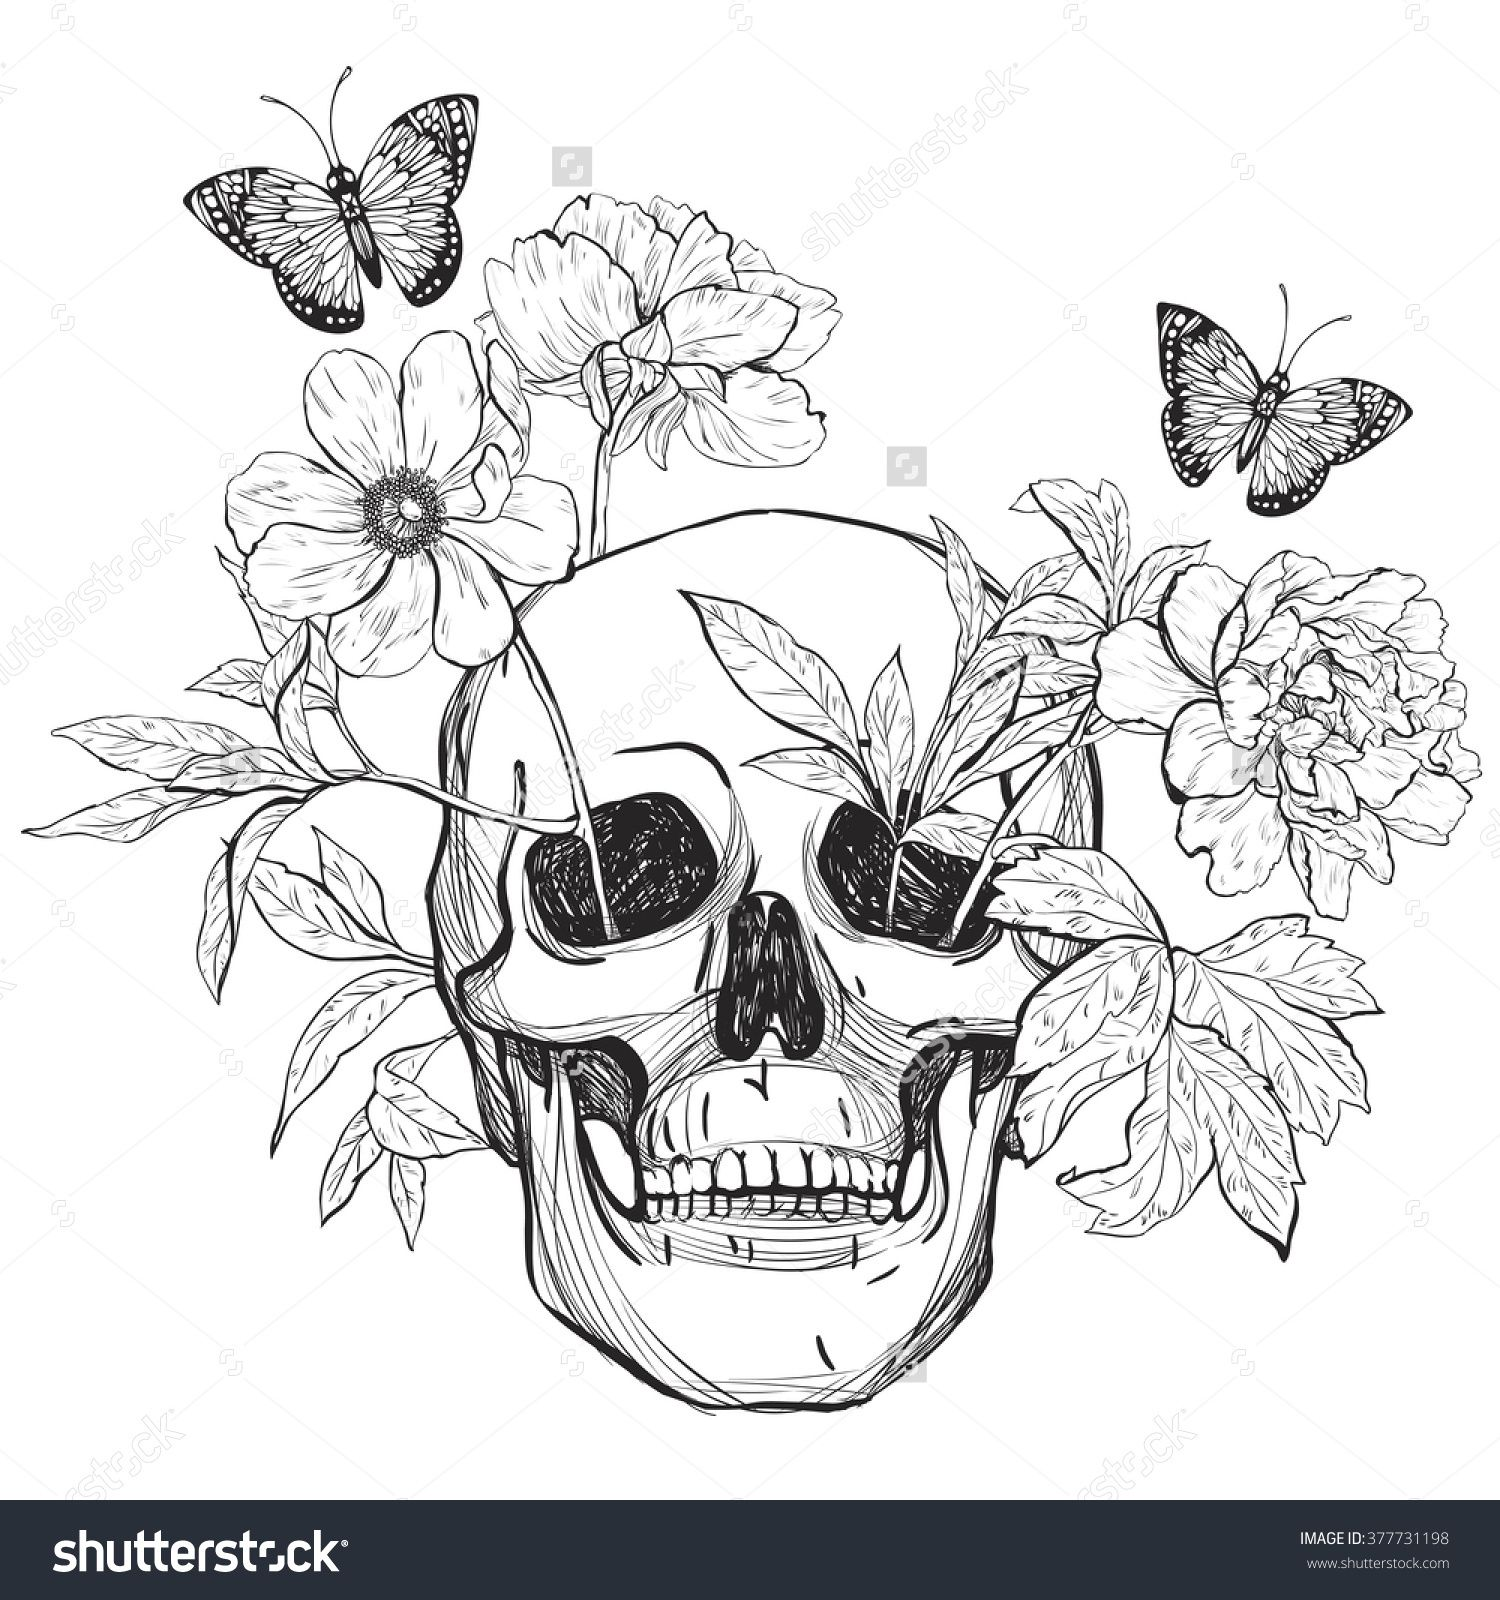 skull flowers and butterfly tattoo art coloring books hand drawn